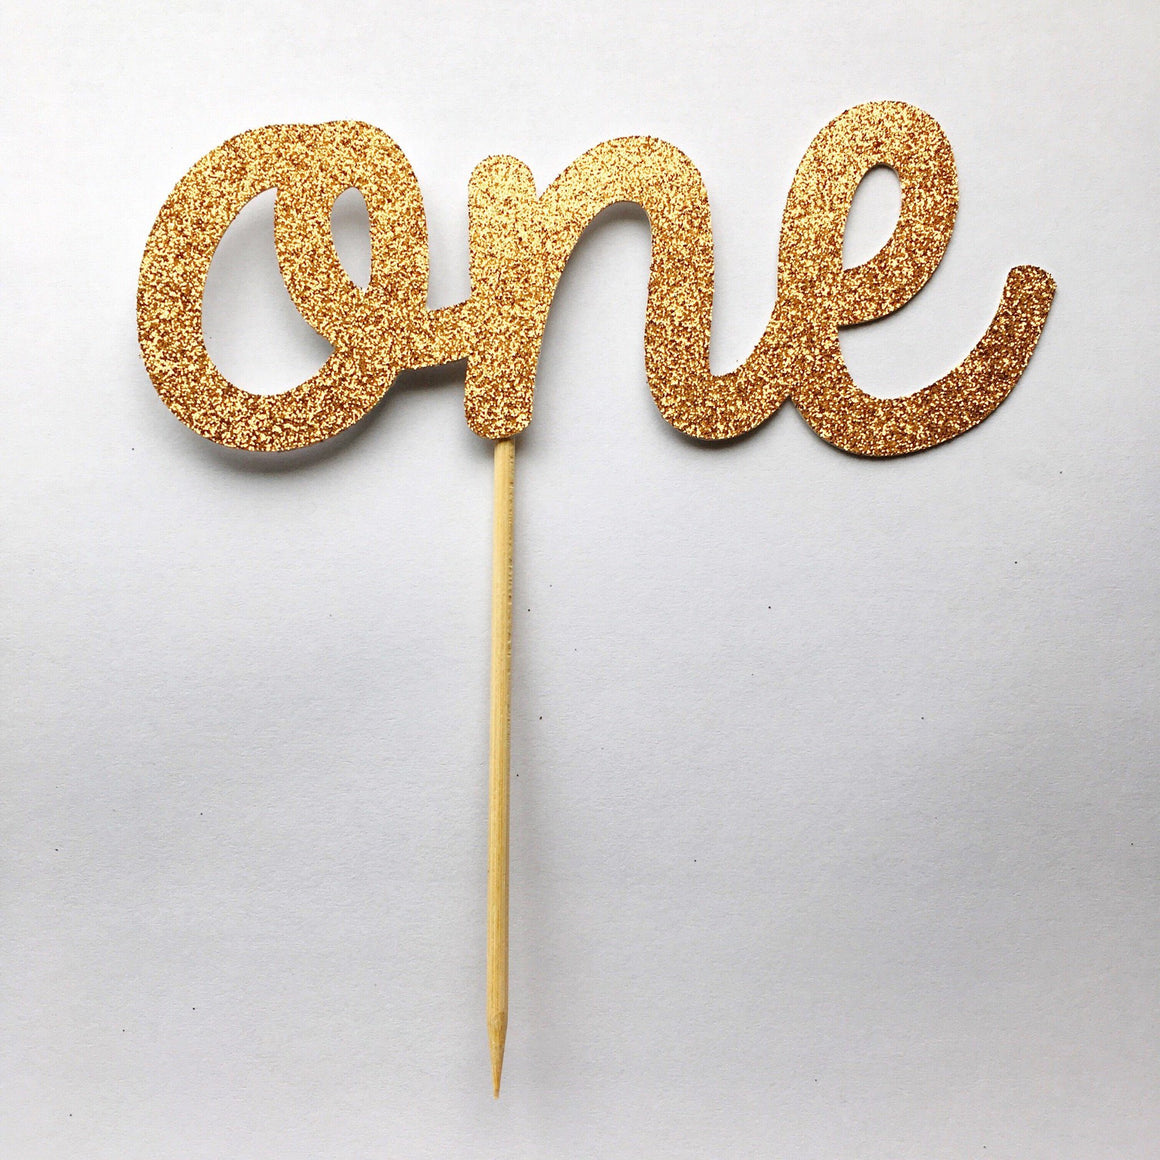 CAKE TOPPER - ONE GLITTER ROSE GOLD, Picks + Toppers, BON + CO - Bon + Co. Party Studio